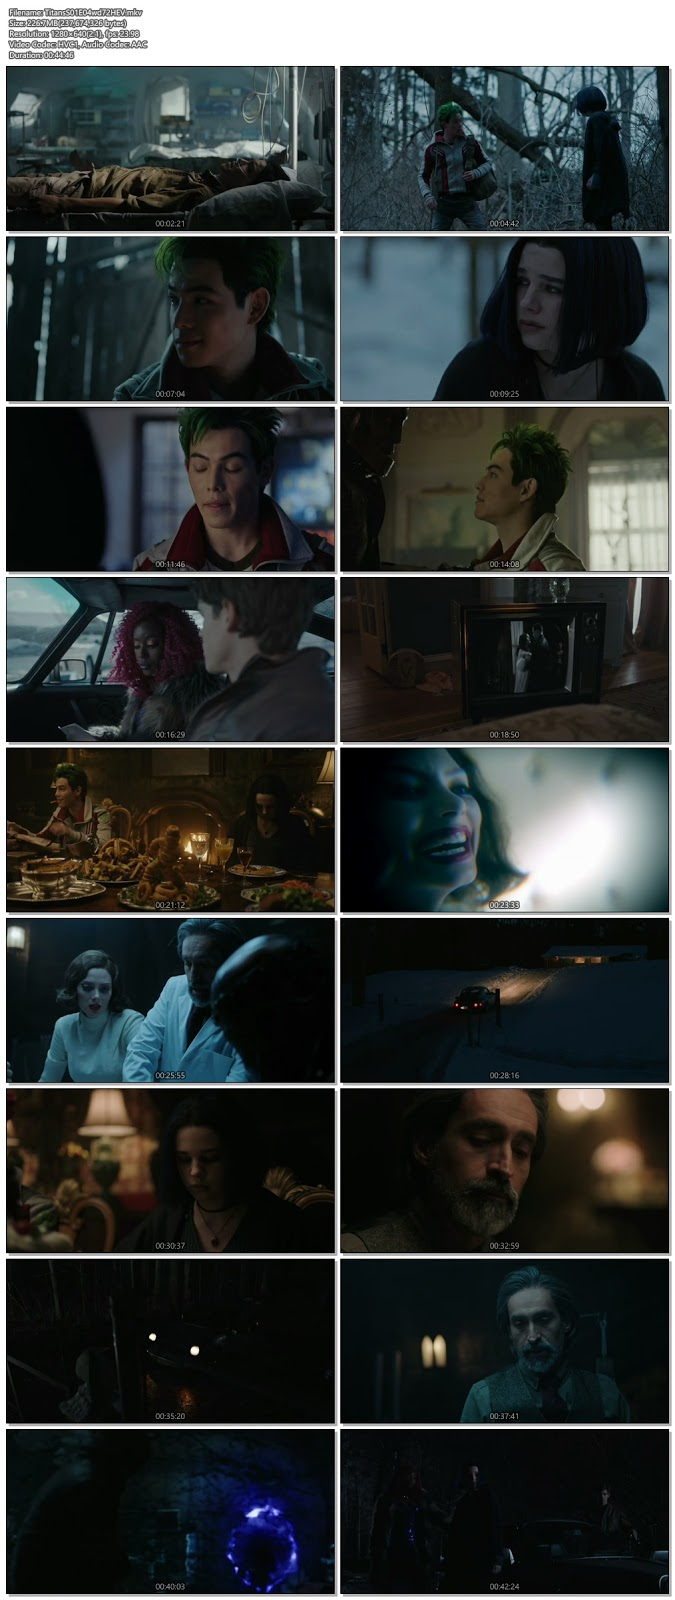 Titans S01 Episode 04 720p HDTV 200MB ESub x265 HEVC , hollwood tv series Titans S01 Episode 01 720p hdtv tv show hevc x265 hdrip 200mb 250mb free download or watch online at world4ufree.vip